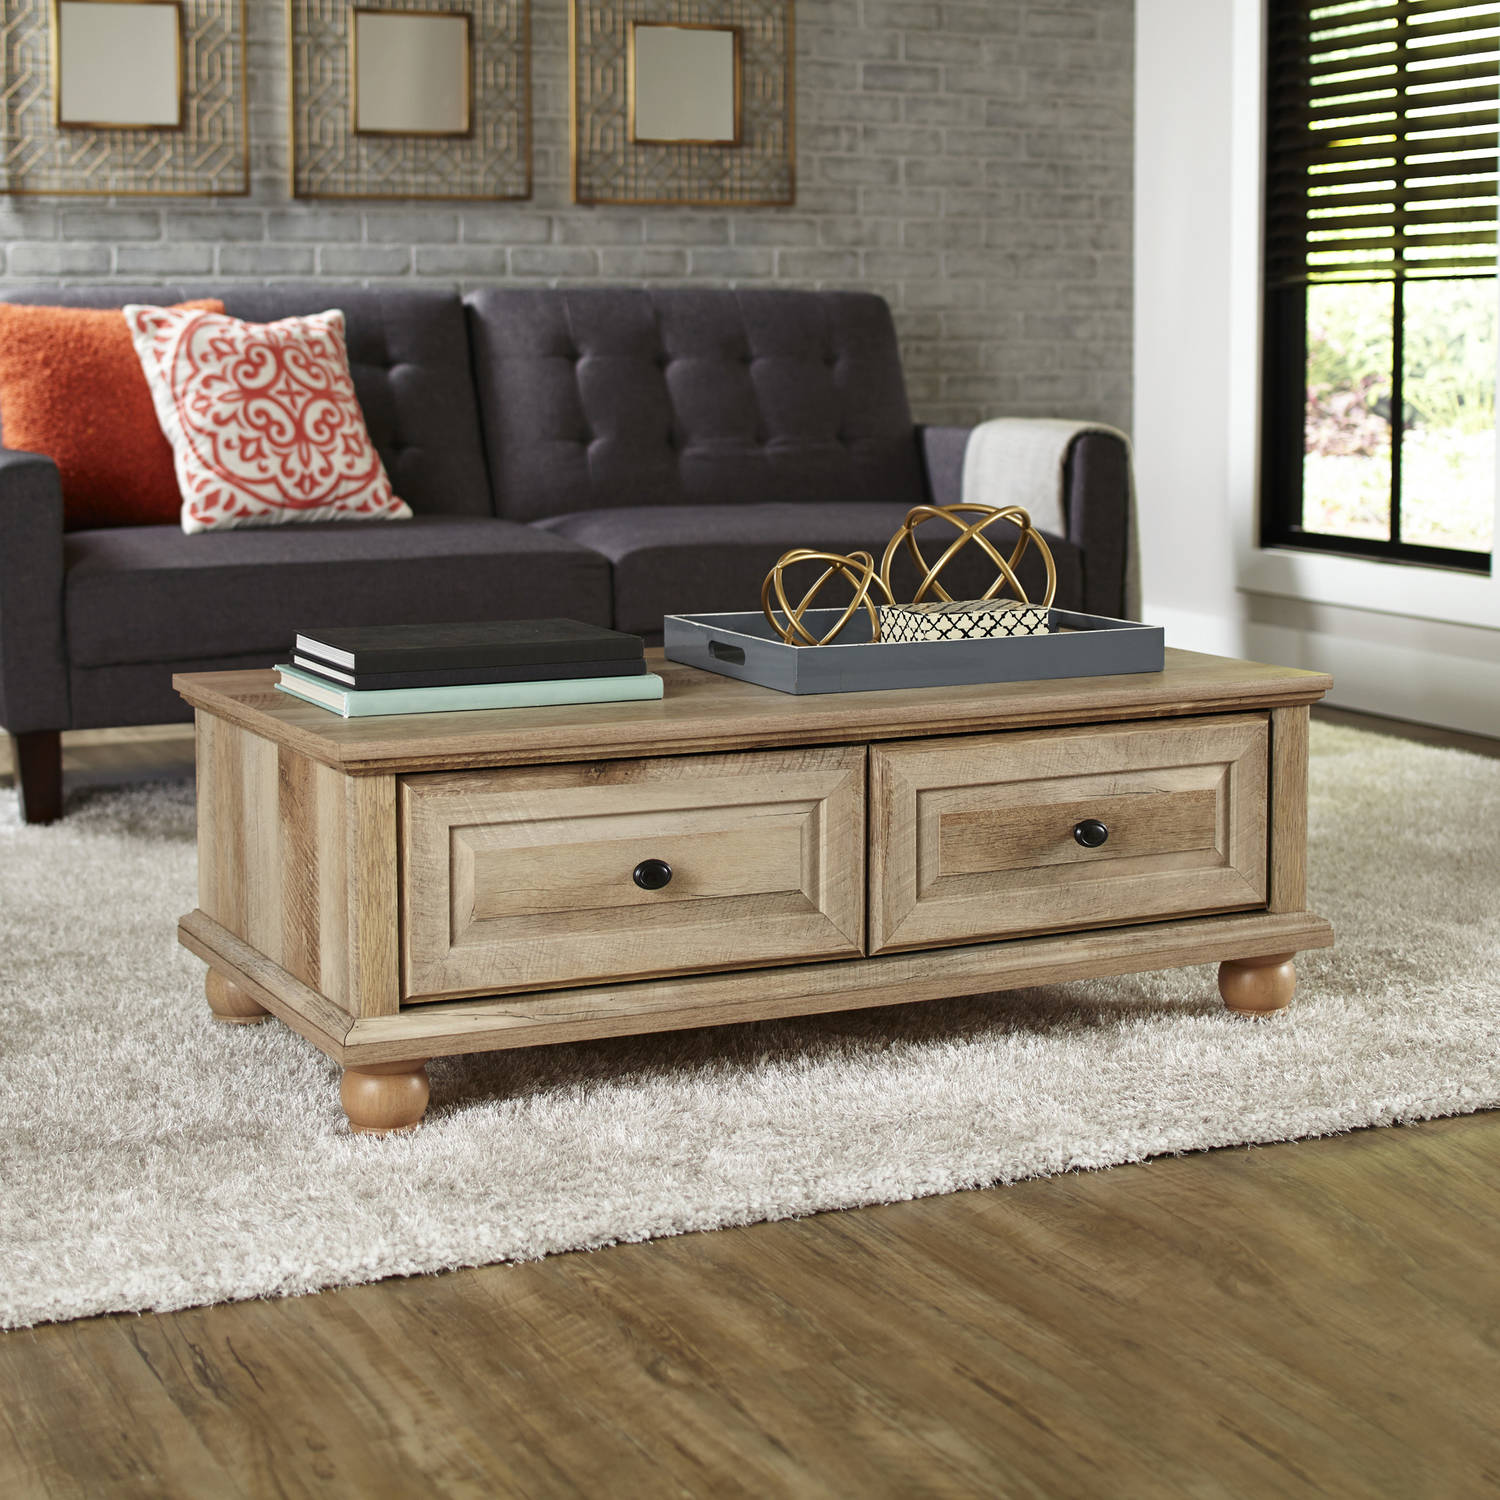 Setting Coffee Tables in Interior Designing - Hamstech Blog